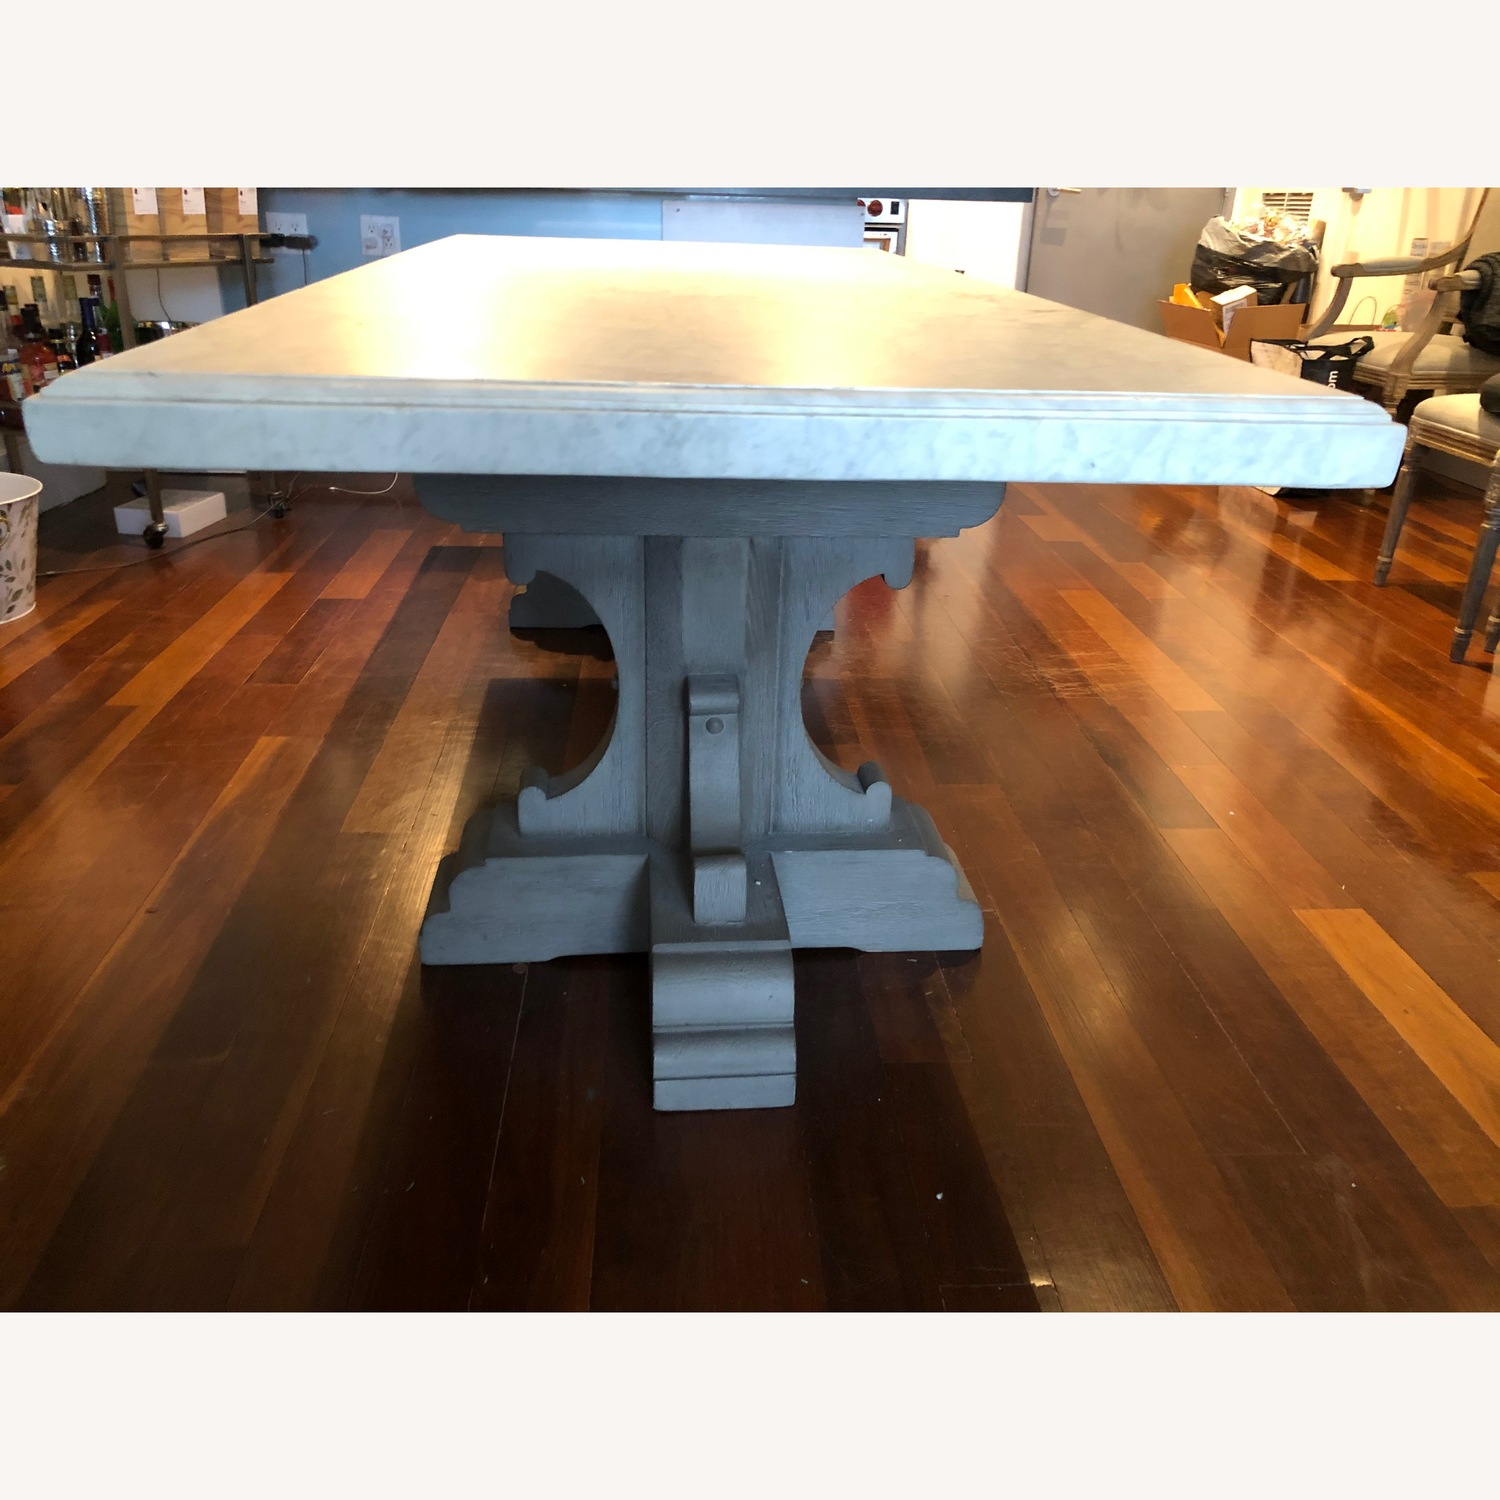 Restoration Hardware Oak & Marble Rect Dining Table - image-2